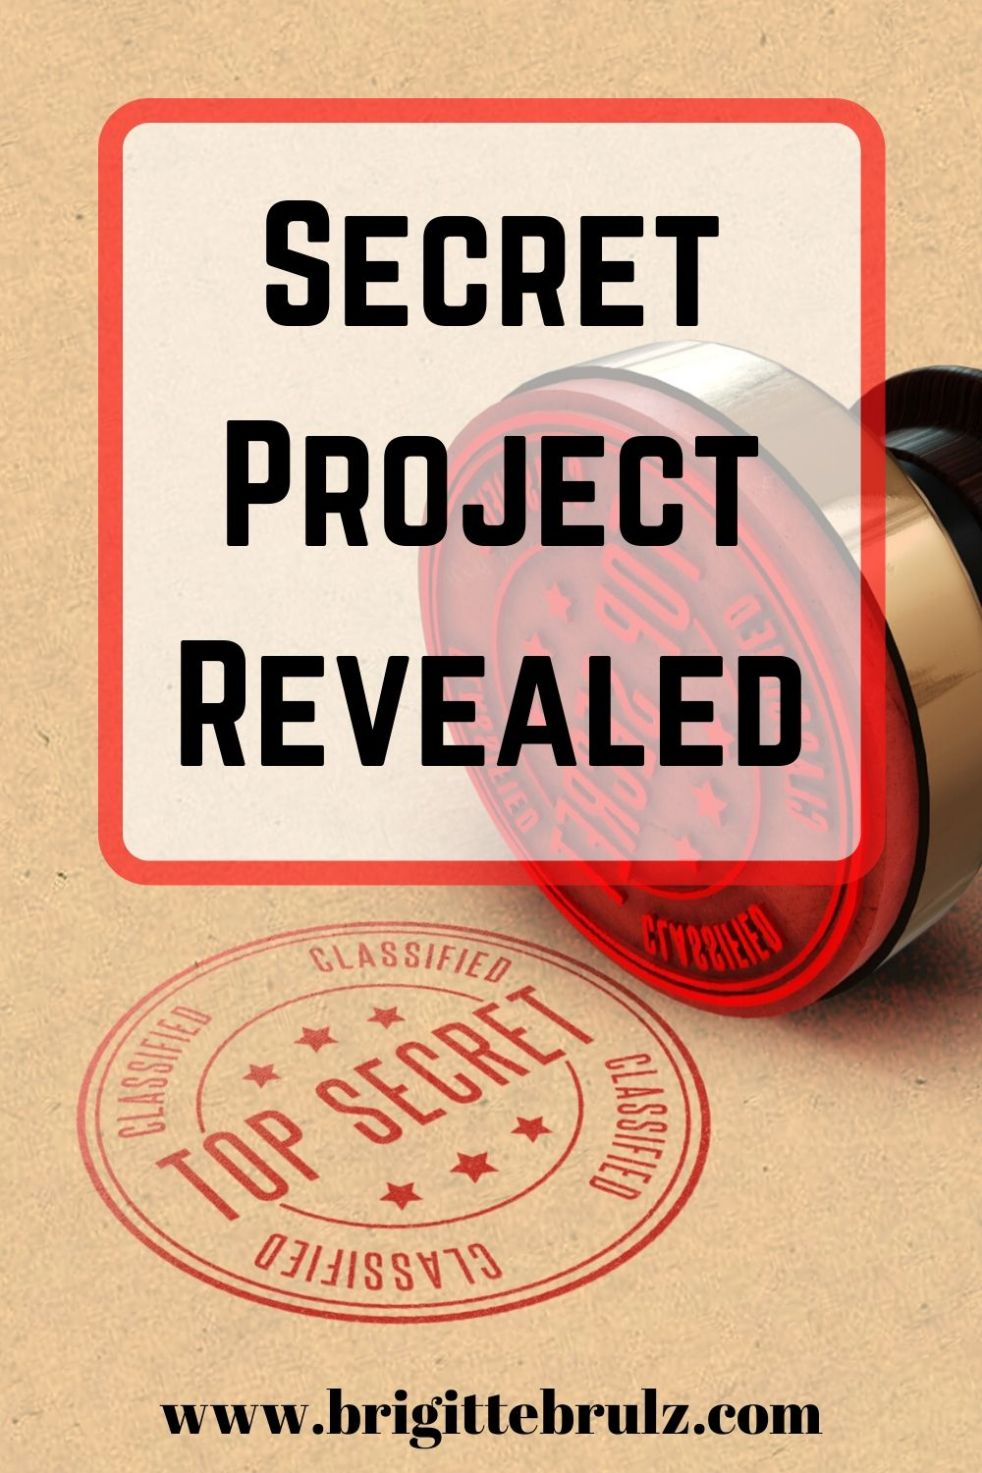 Secret Project Revealed